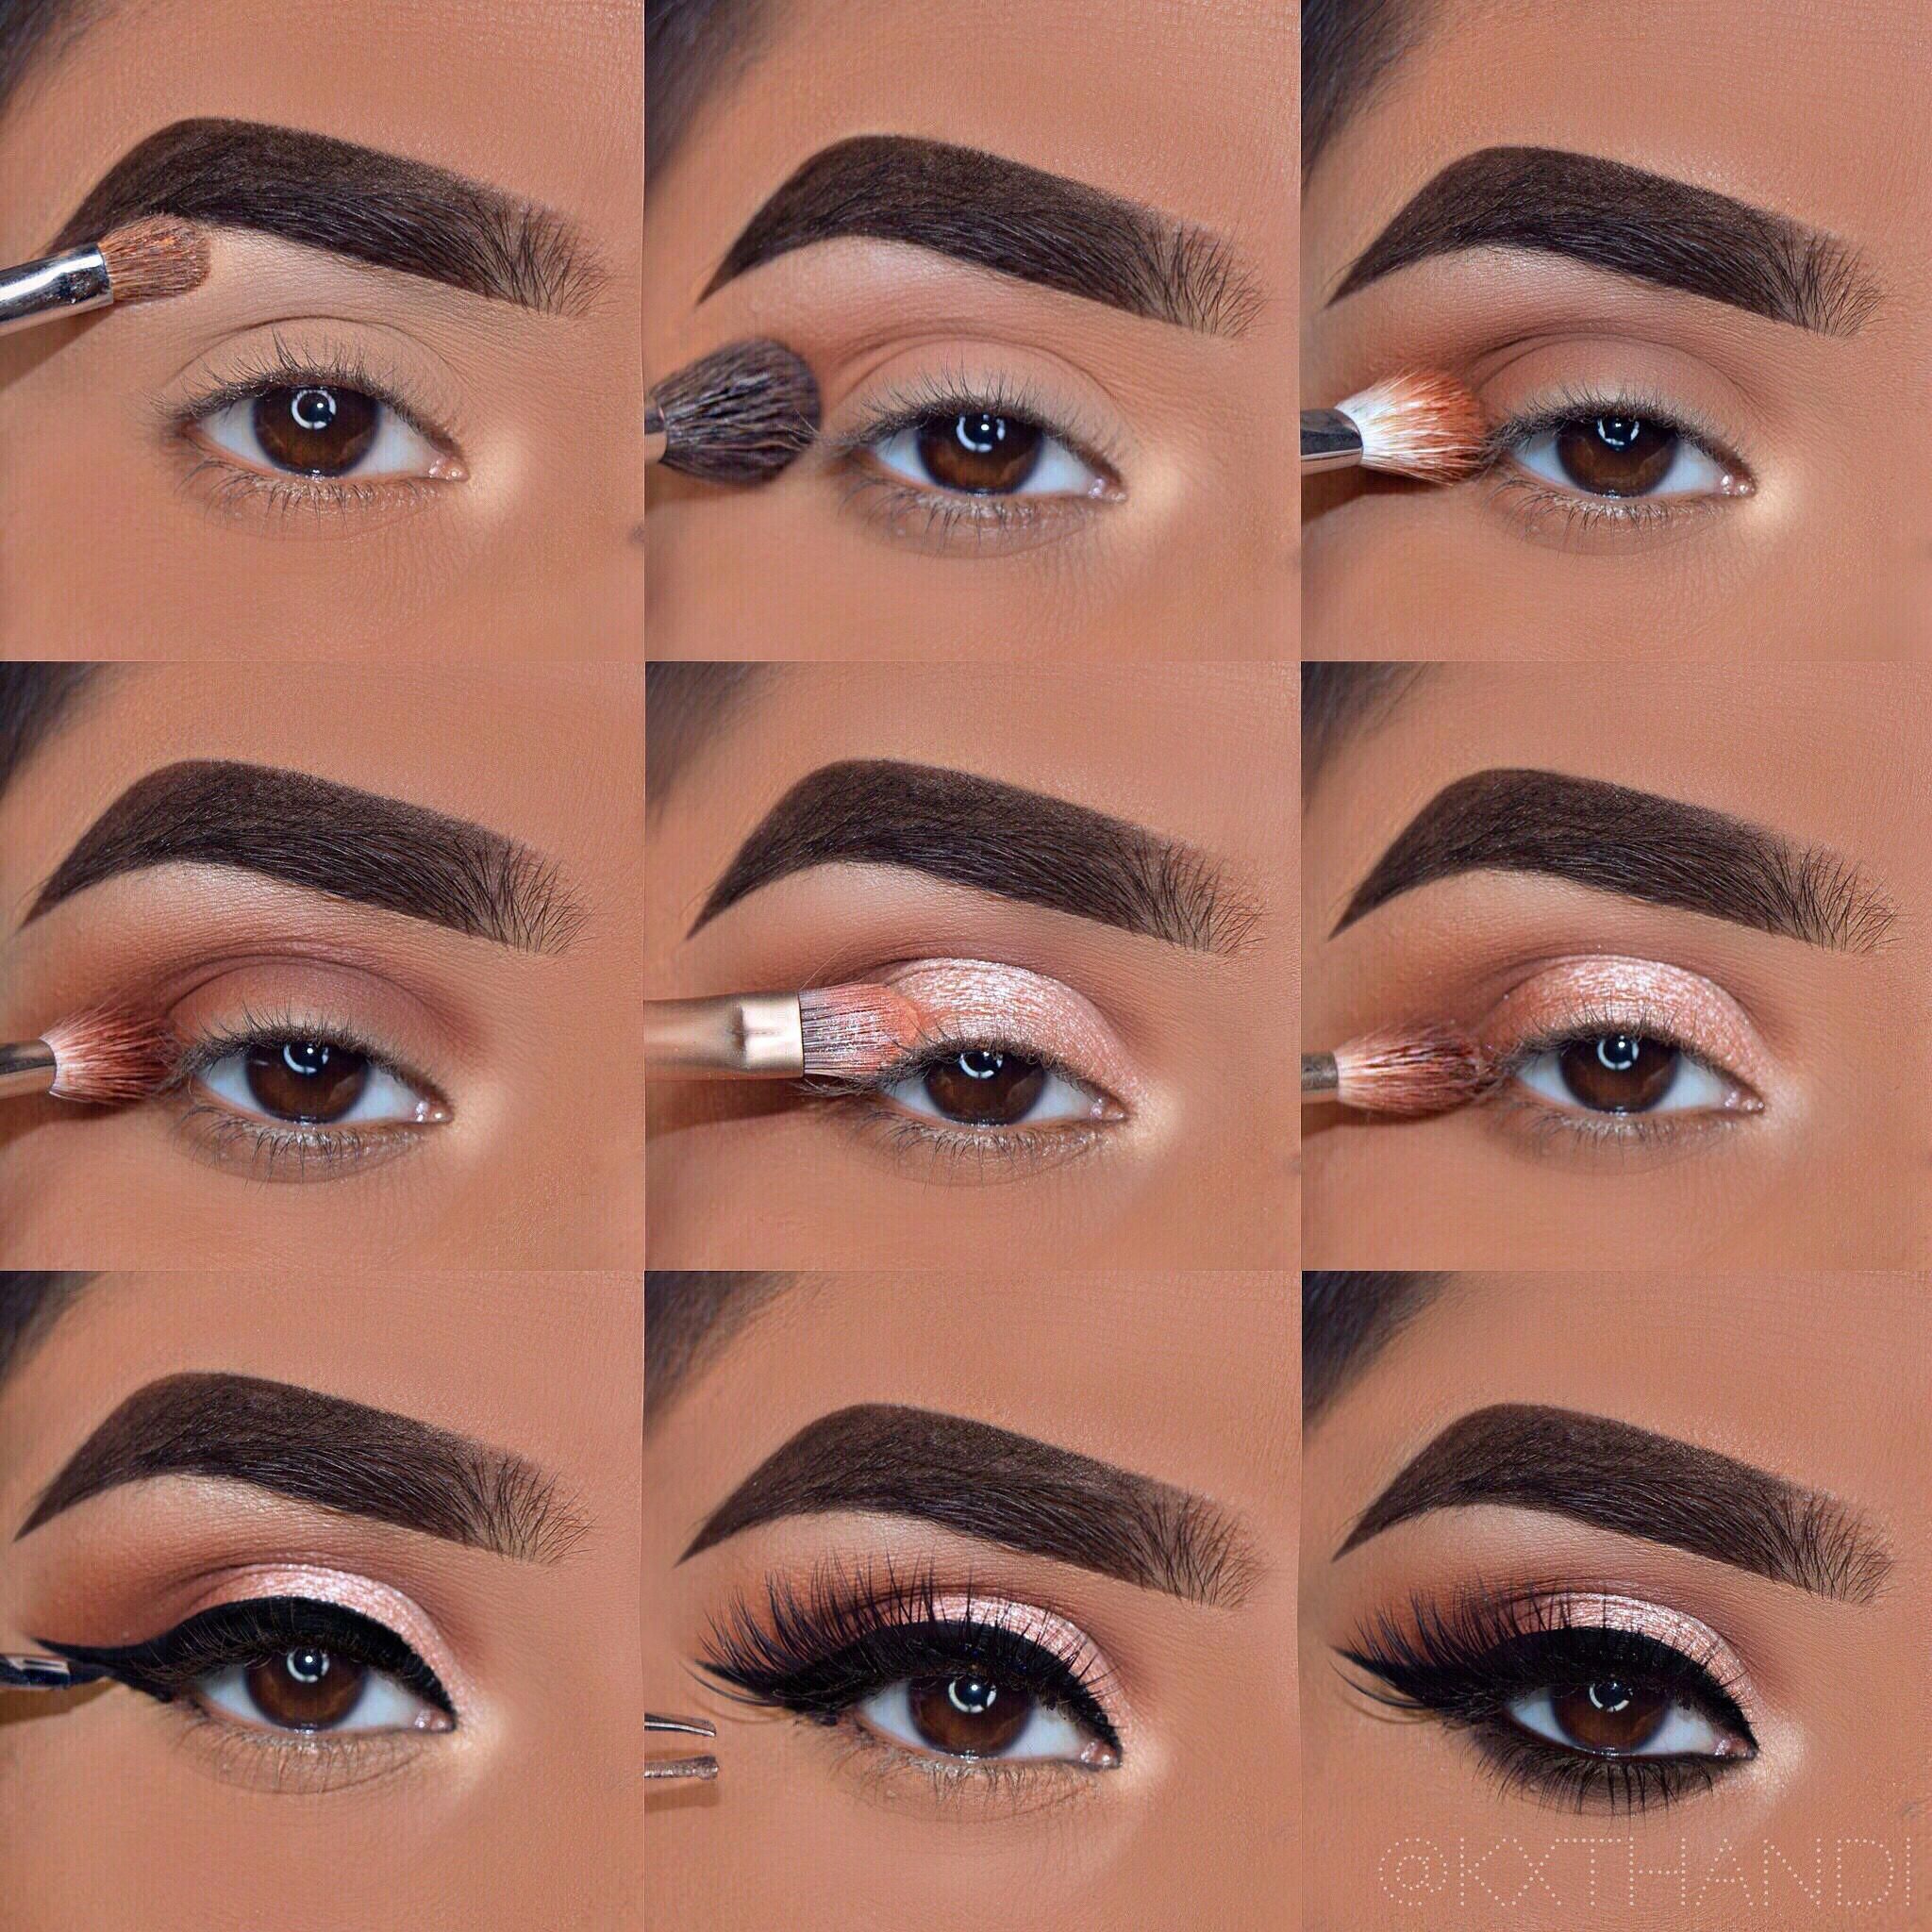 26 Easy Step by Step Makeup Tutorials for Beginners in